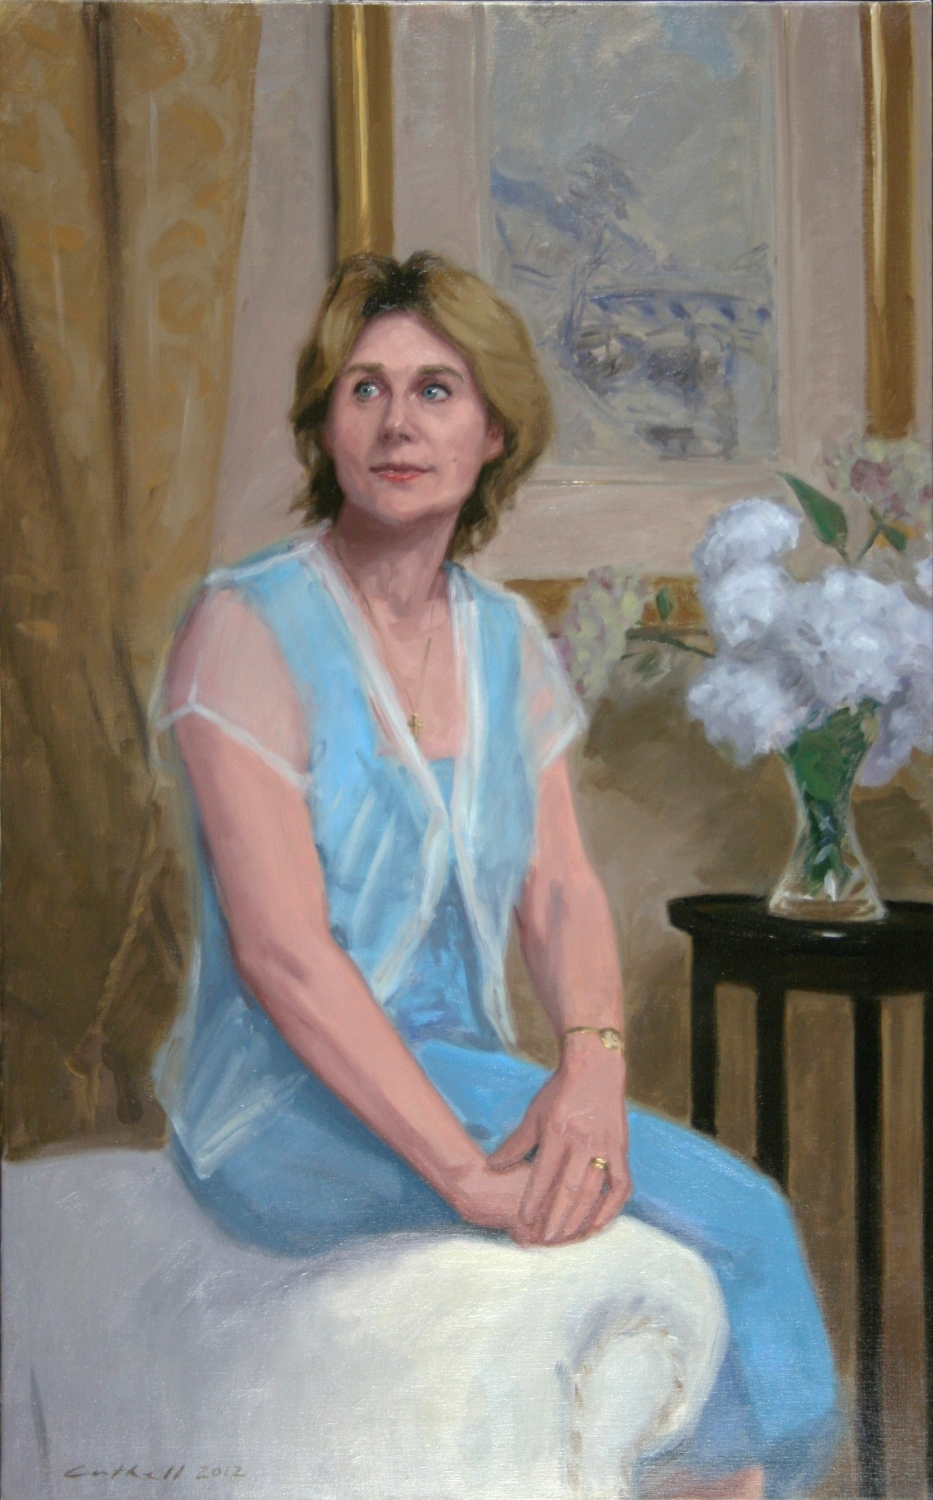 Avenal McKinnon,  Oil on Linen, 137 x 92cm, 2012